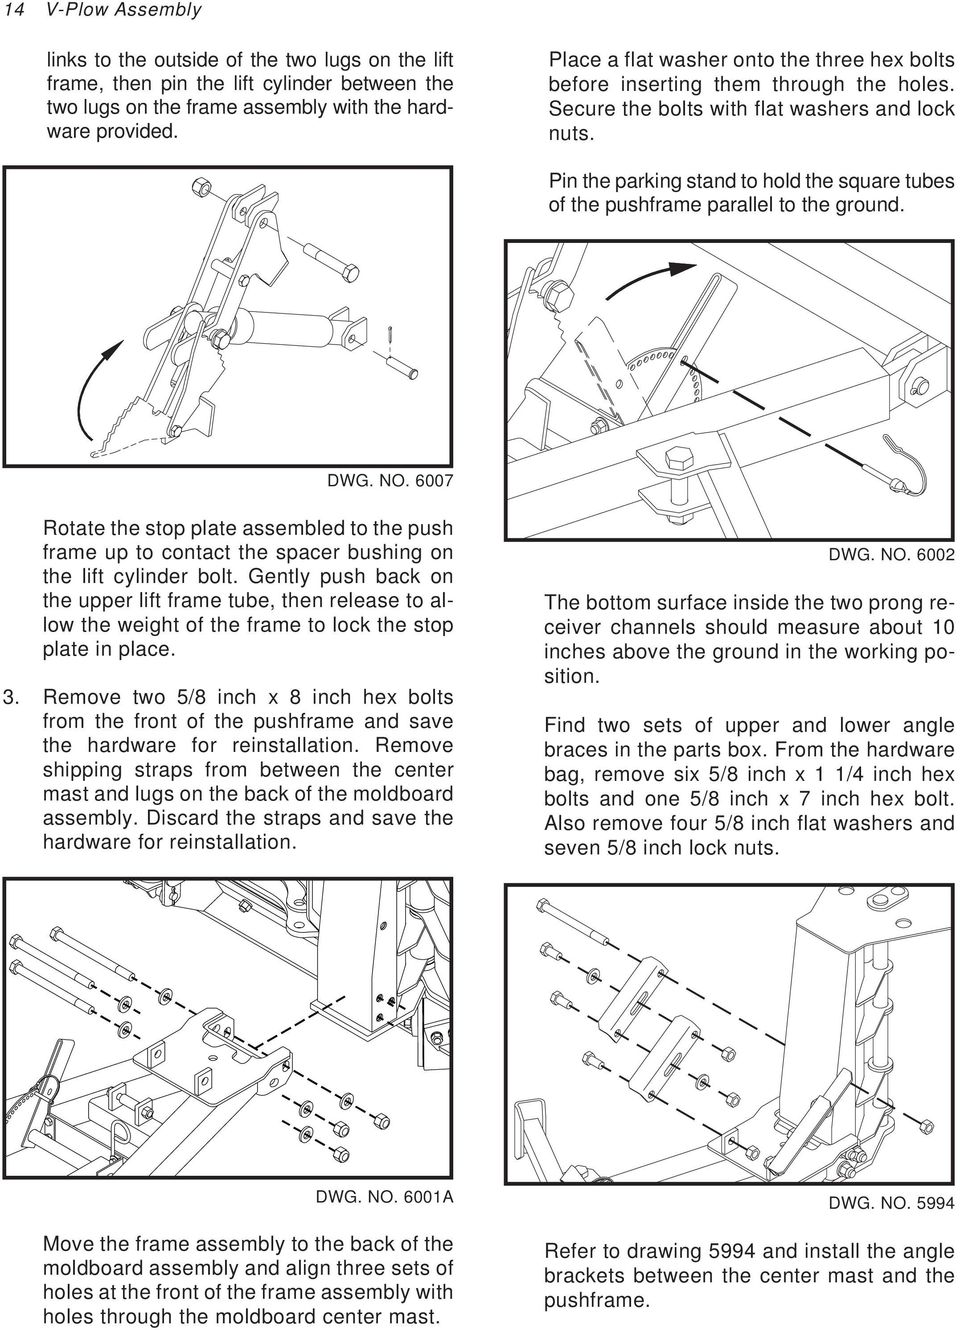 Pickup Truck Snowplow V Plow Pdf Trailer Light Wiring Harness 4 Flat 25ft To Redo Lights Pin The Parking Stand Hold Square Tubes Of Pushframe Parallel Ground